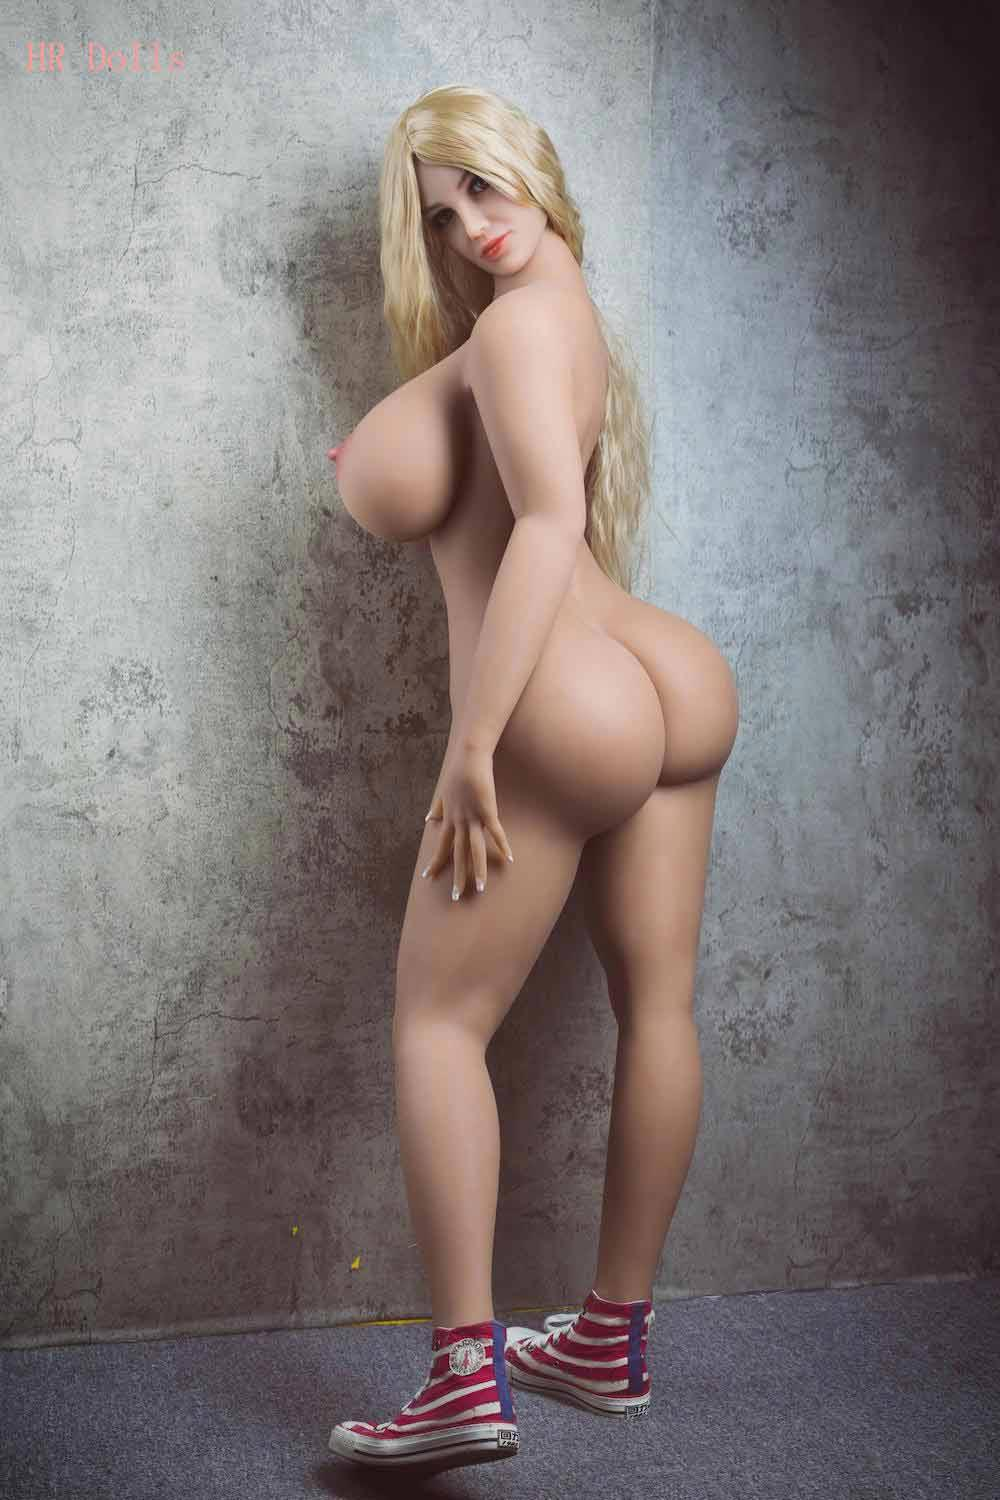 Big breasted sex doll standing facing the wall